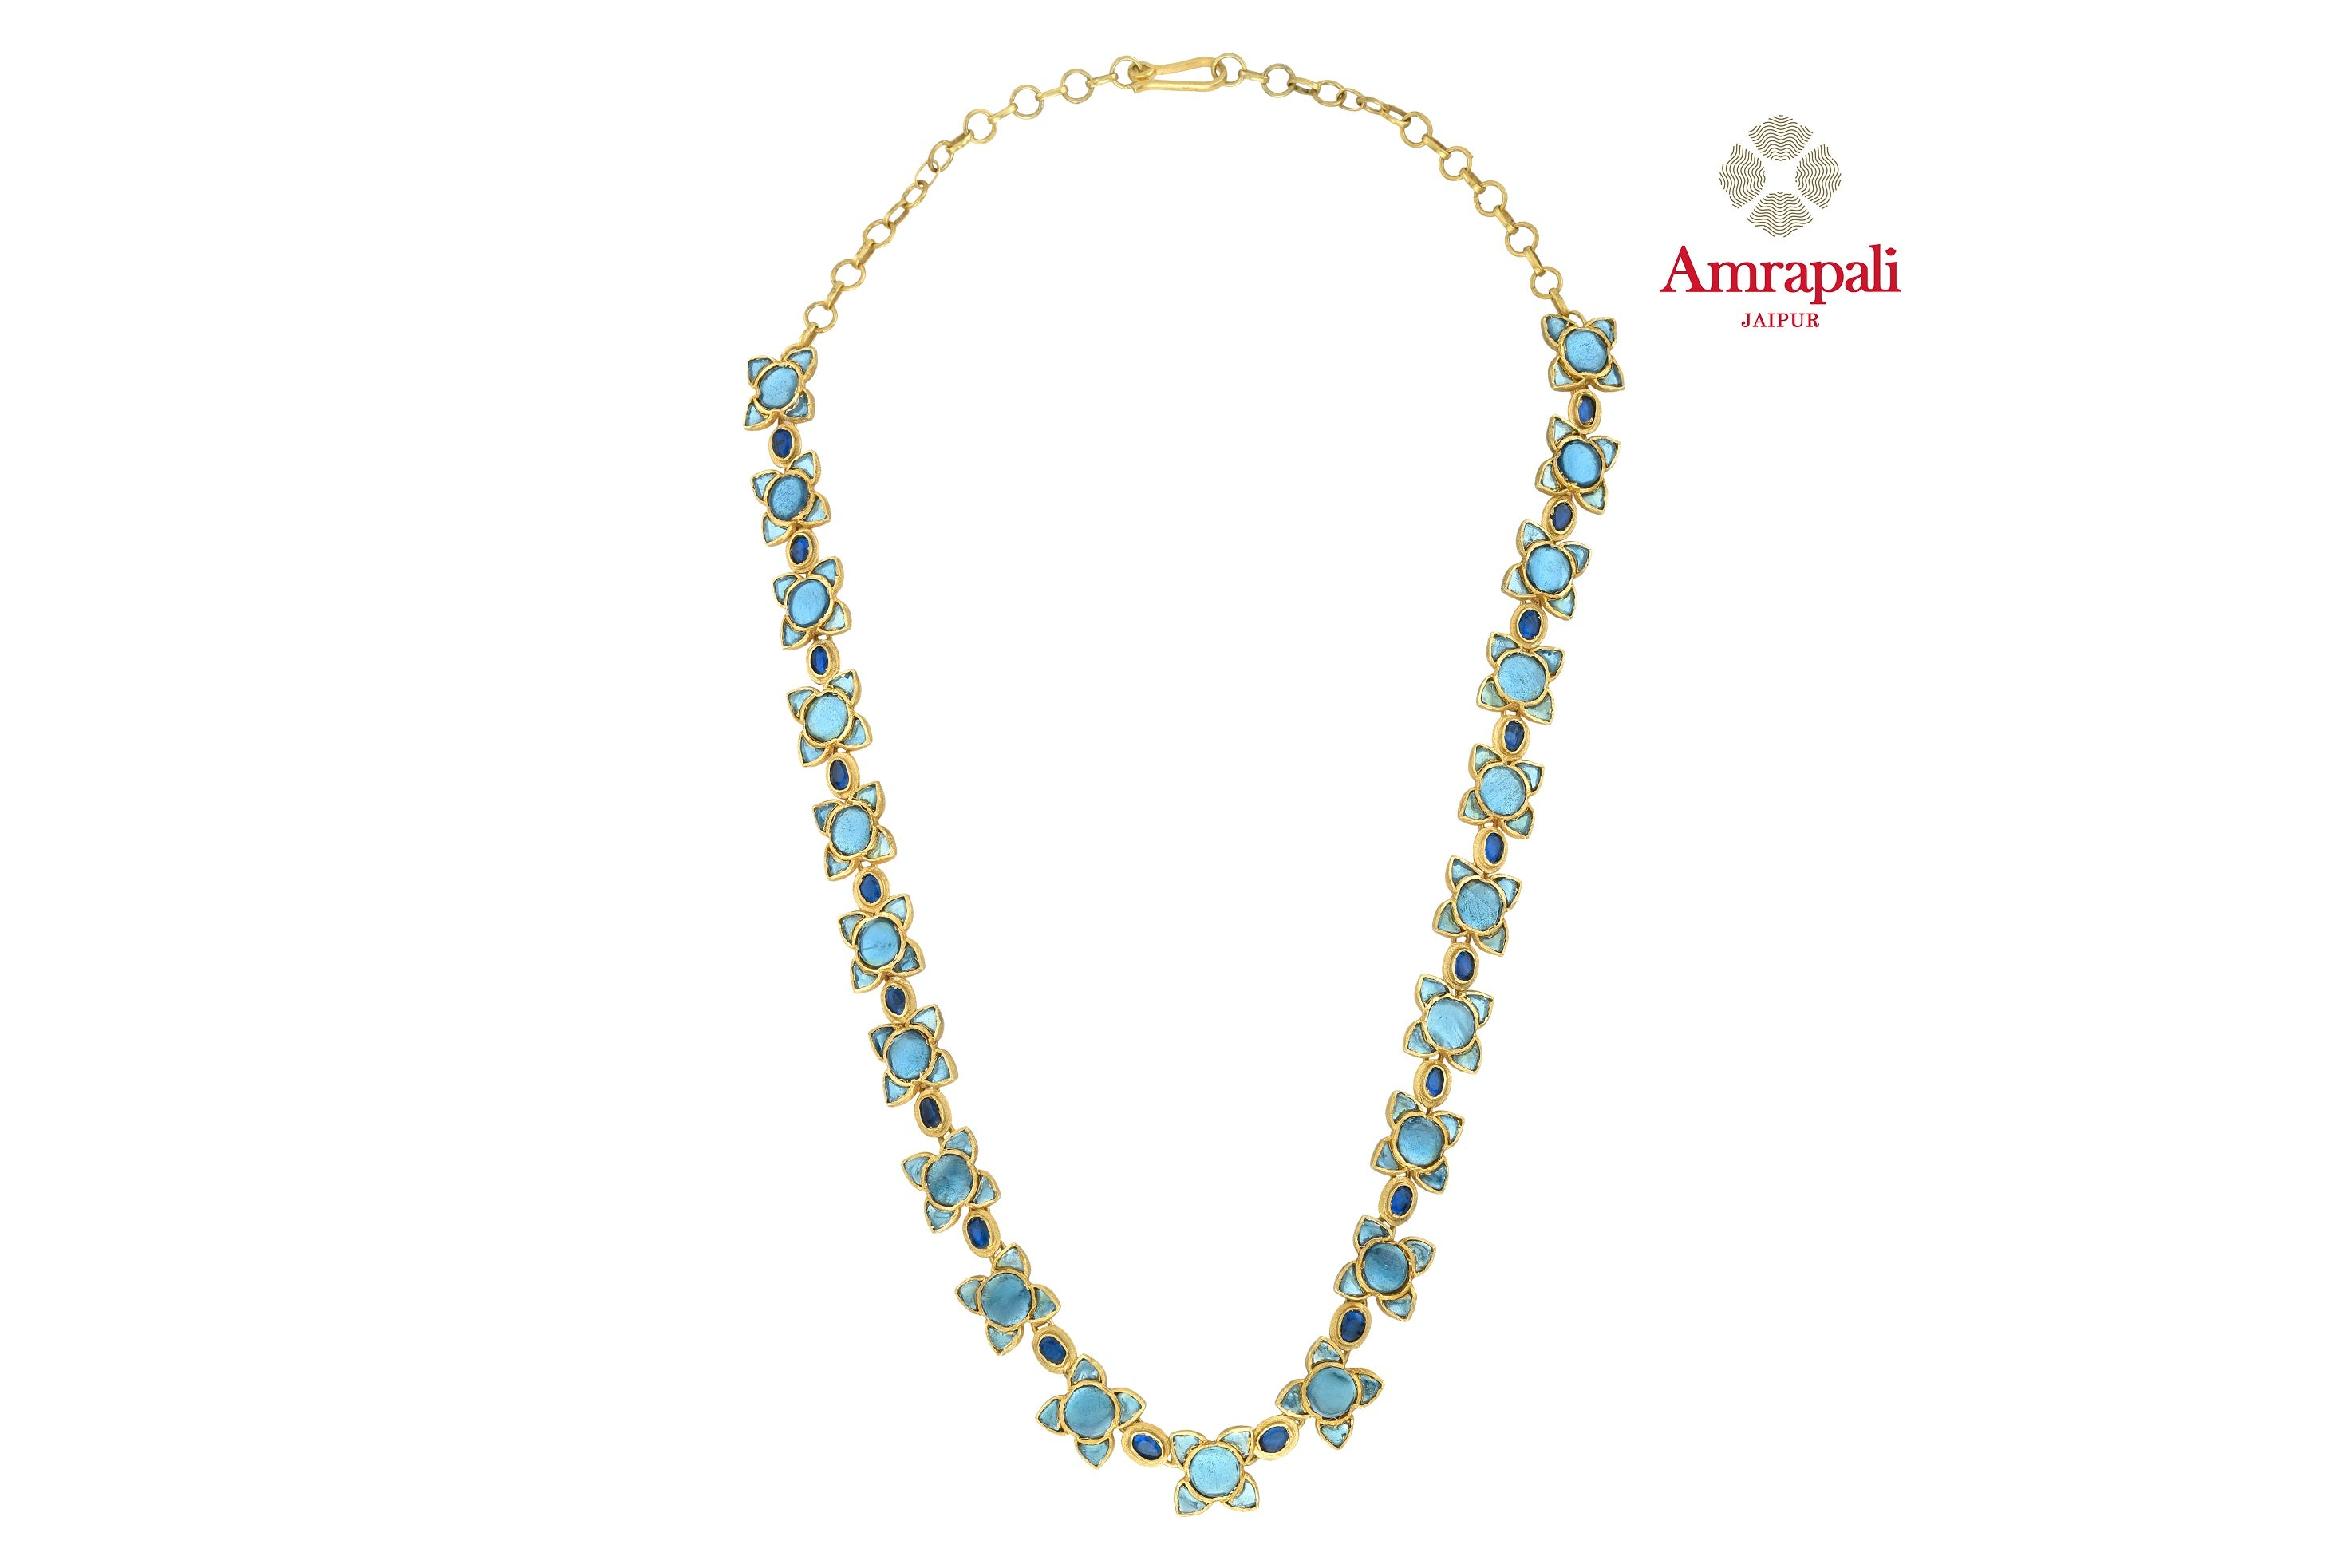 Shop beautiful Amrapali silver gold plated blue floral glass necklace online in USA. Shop exquisite Indian silver jewelry, silver necklaces, silver earrings, gold plated jewelry from Amrapali from Pure Elegance Indian fashion store in USA.-front